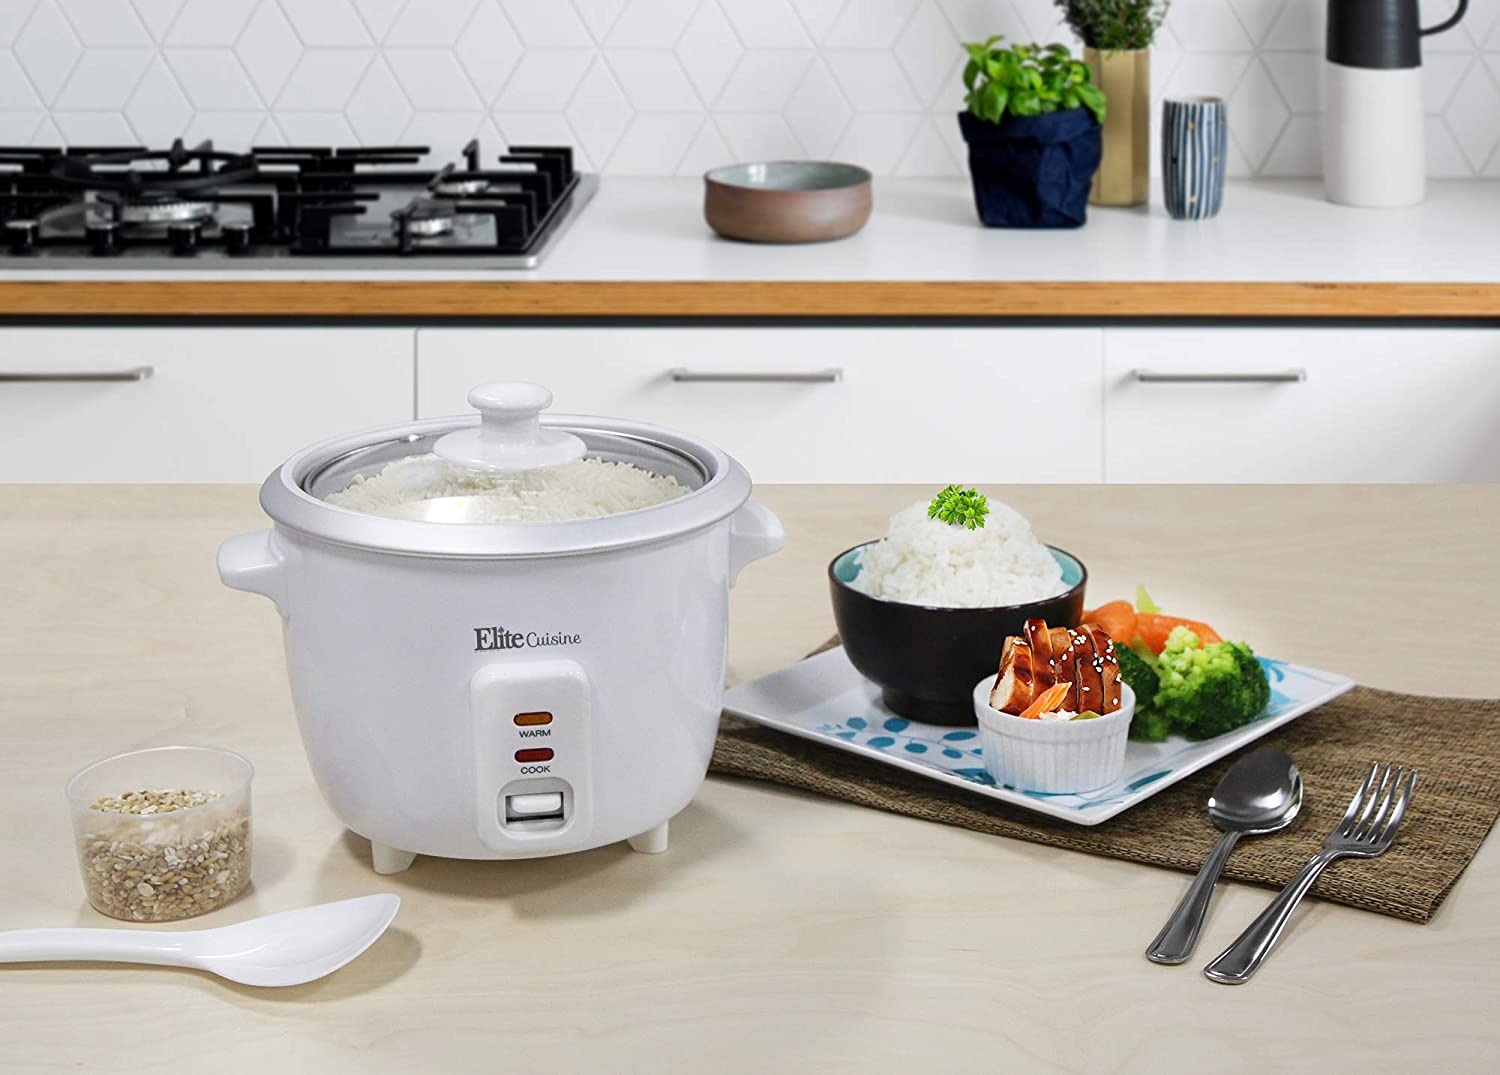 Elite Cuisine Electric Rice Cooker